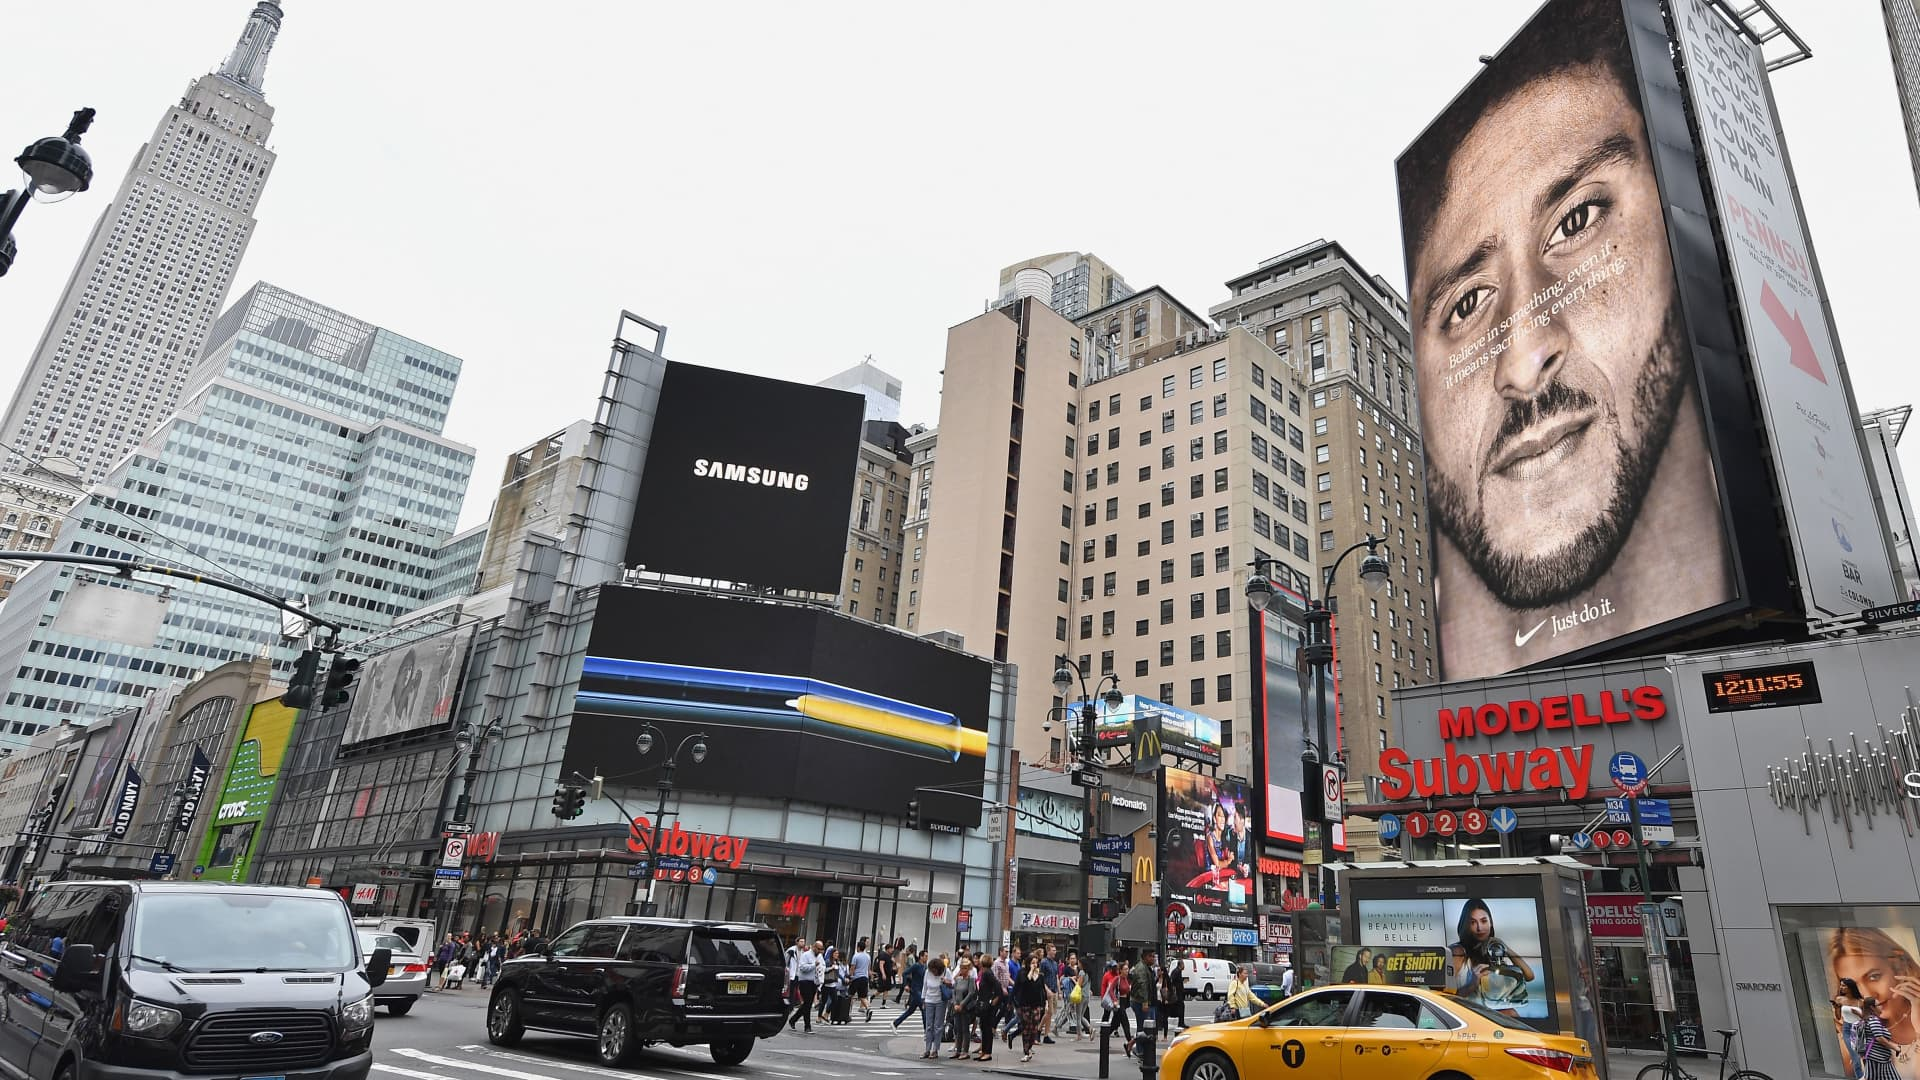 A Nike Ad featuring football player Colin Kaepernick is on display September 8, 2018 in New York City.